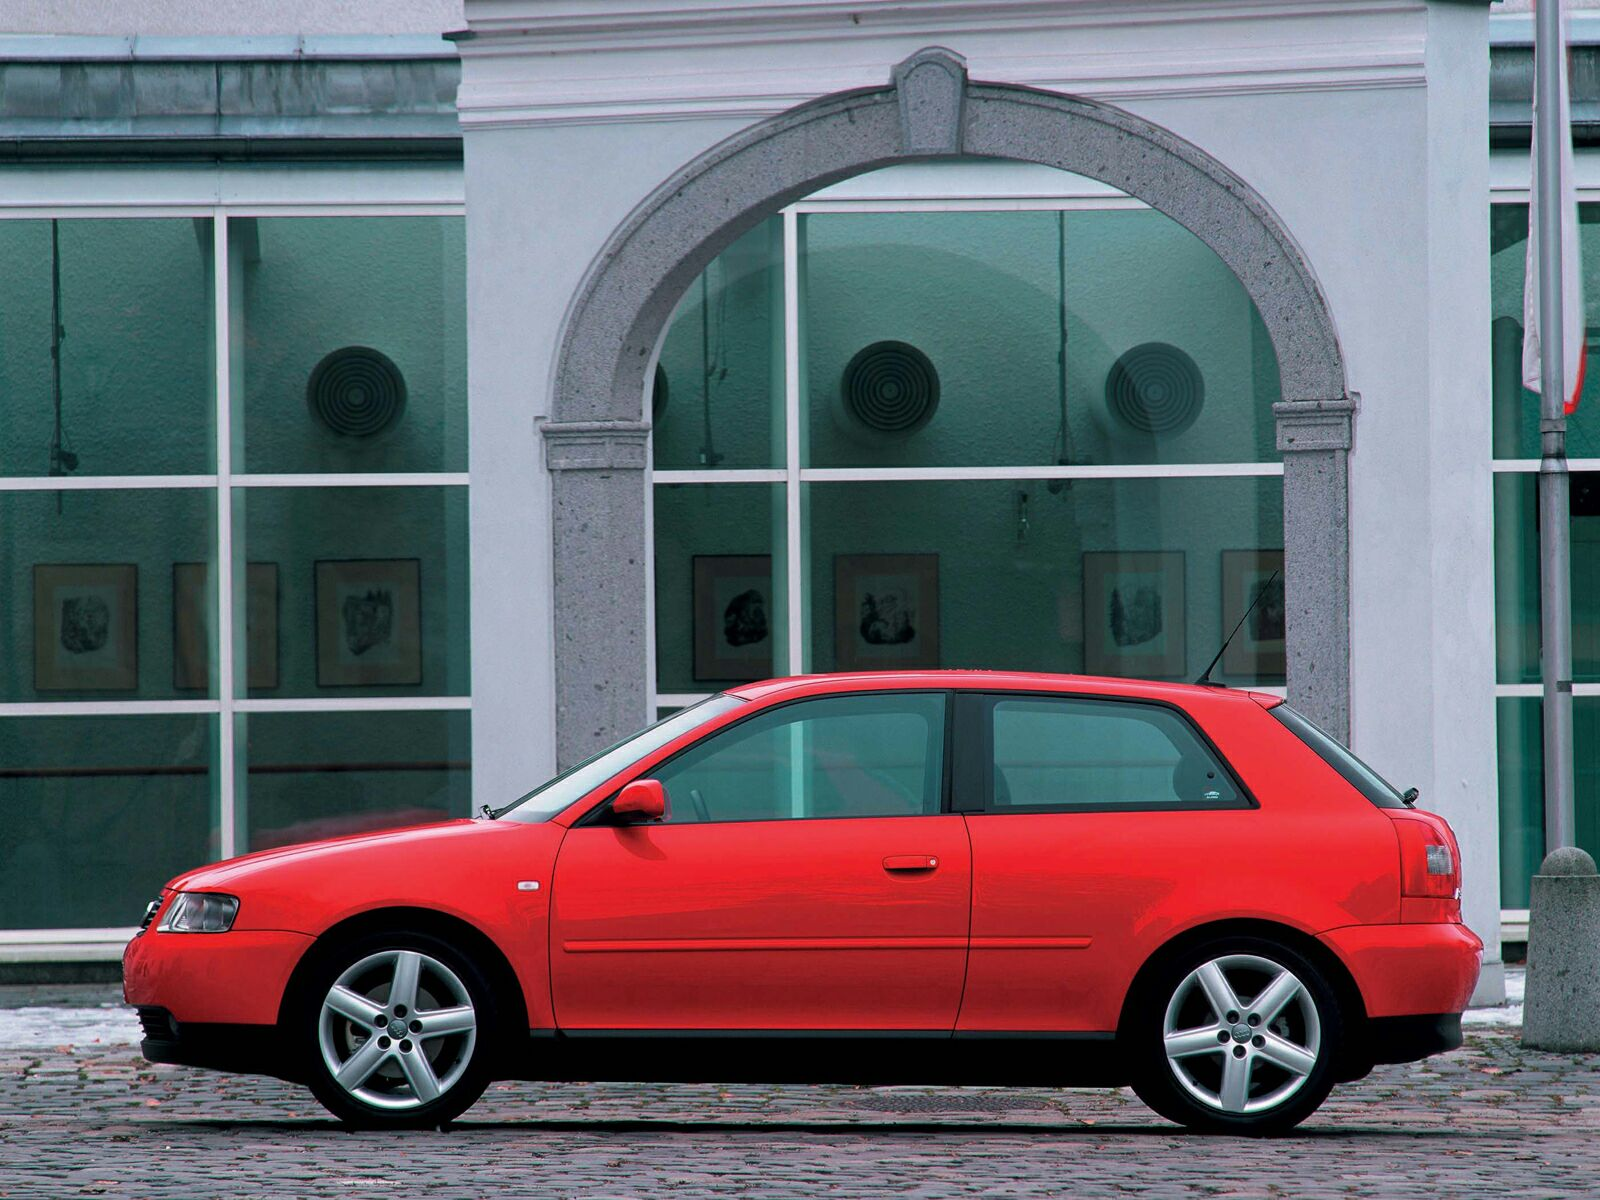 audi a3 specs photos 1996 1997 1998 1999 2000 2001 2002 2003 autoevolution. Black Bedroom Furniture Sets. Home Design Ideas